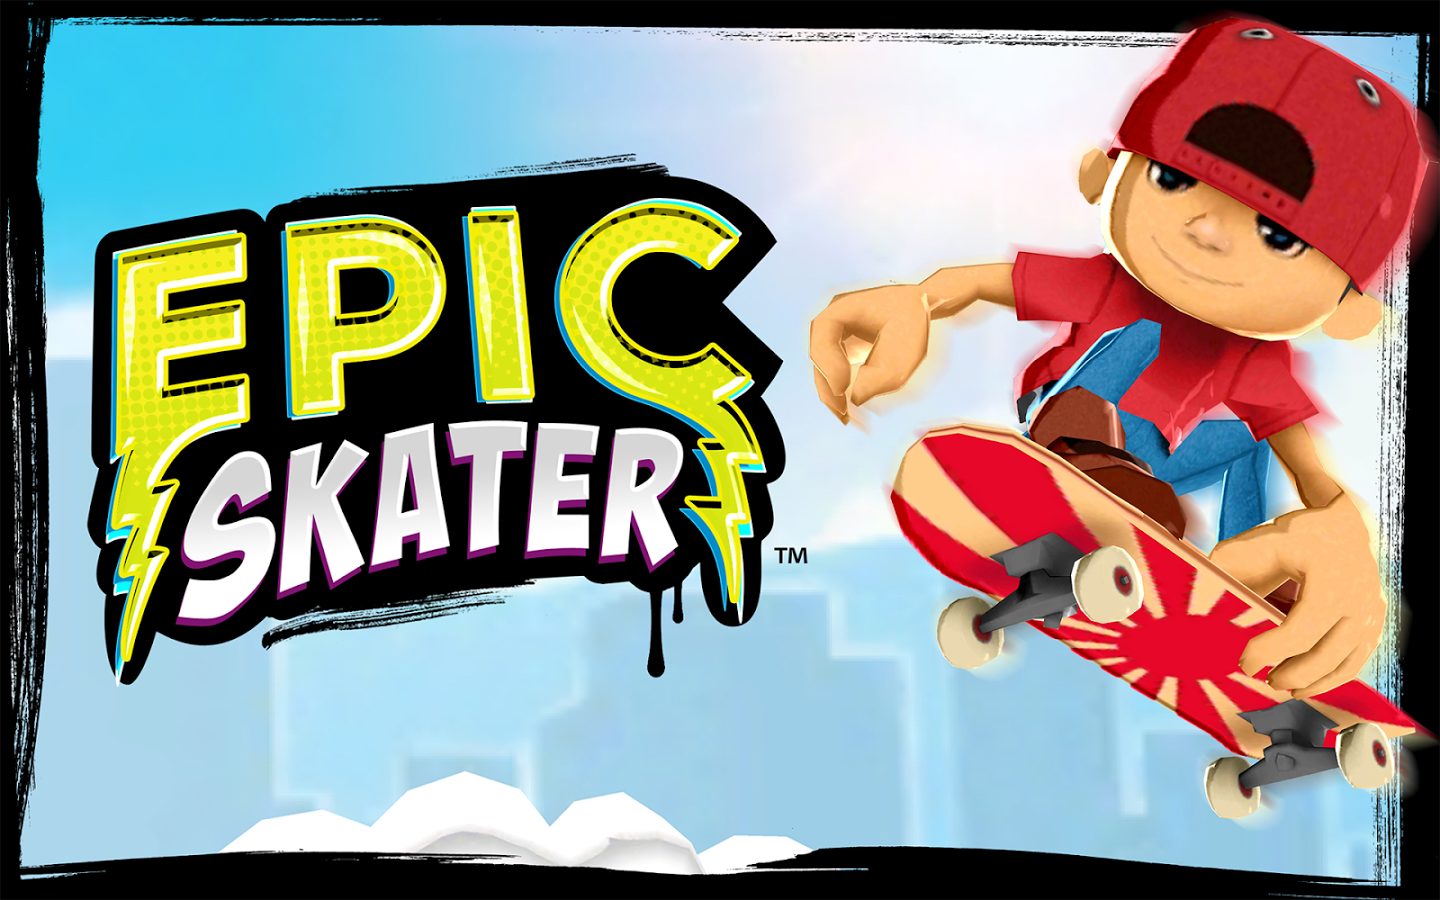 Epic Skater v1.1.7 APK+DATA [Unlimited Coins/Soda]